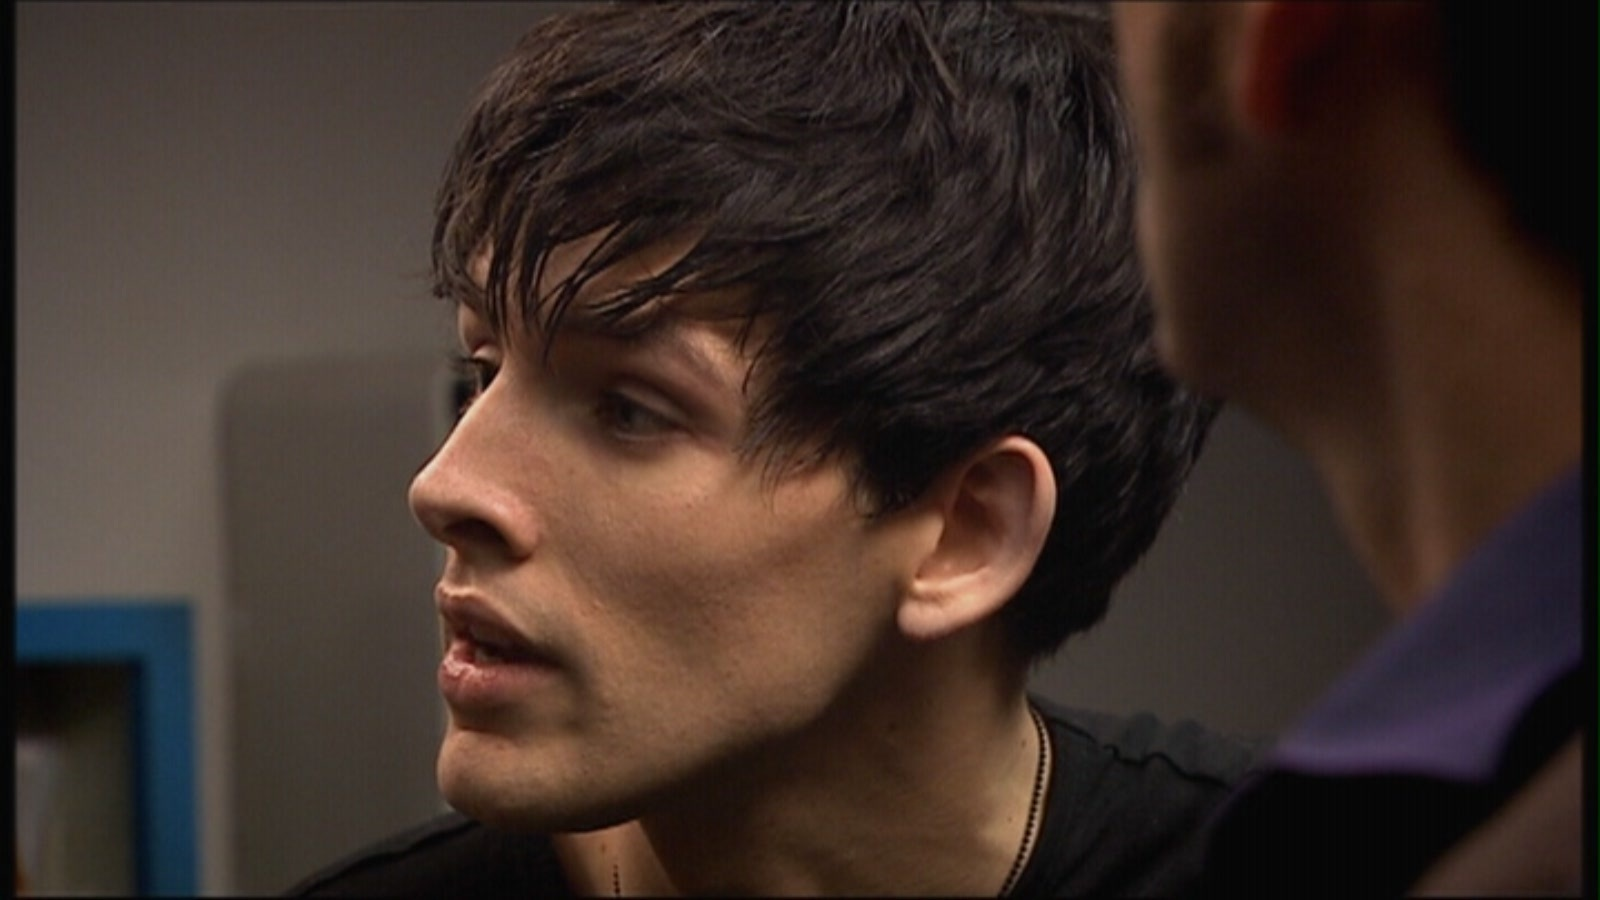 Doctor Who Colin Morgan Image 9919978 Fanpop